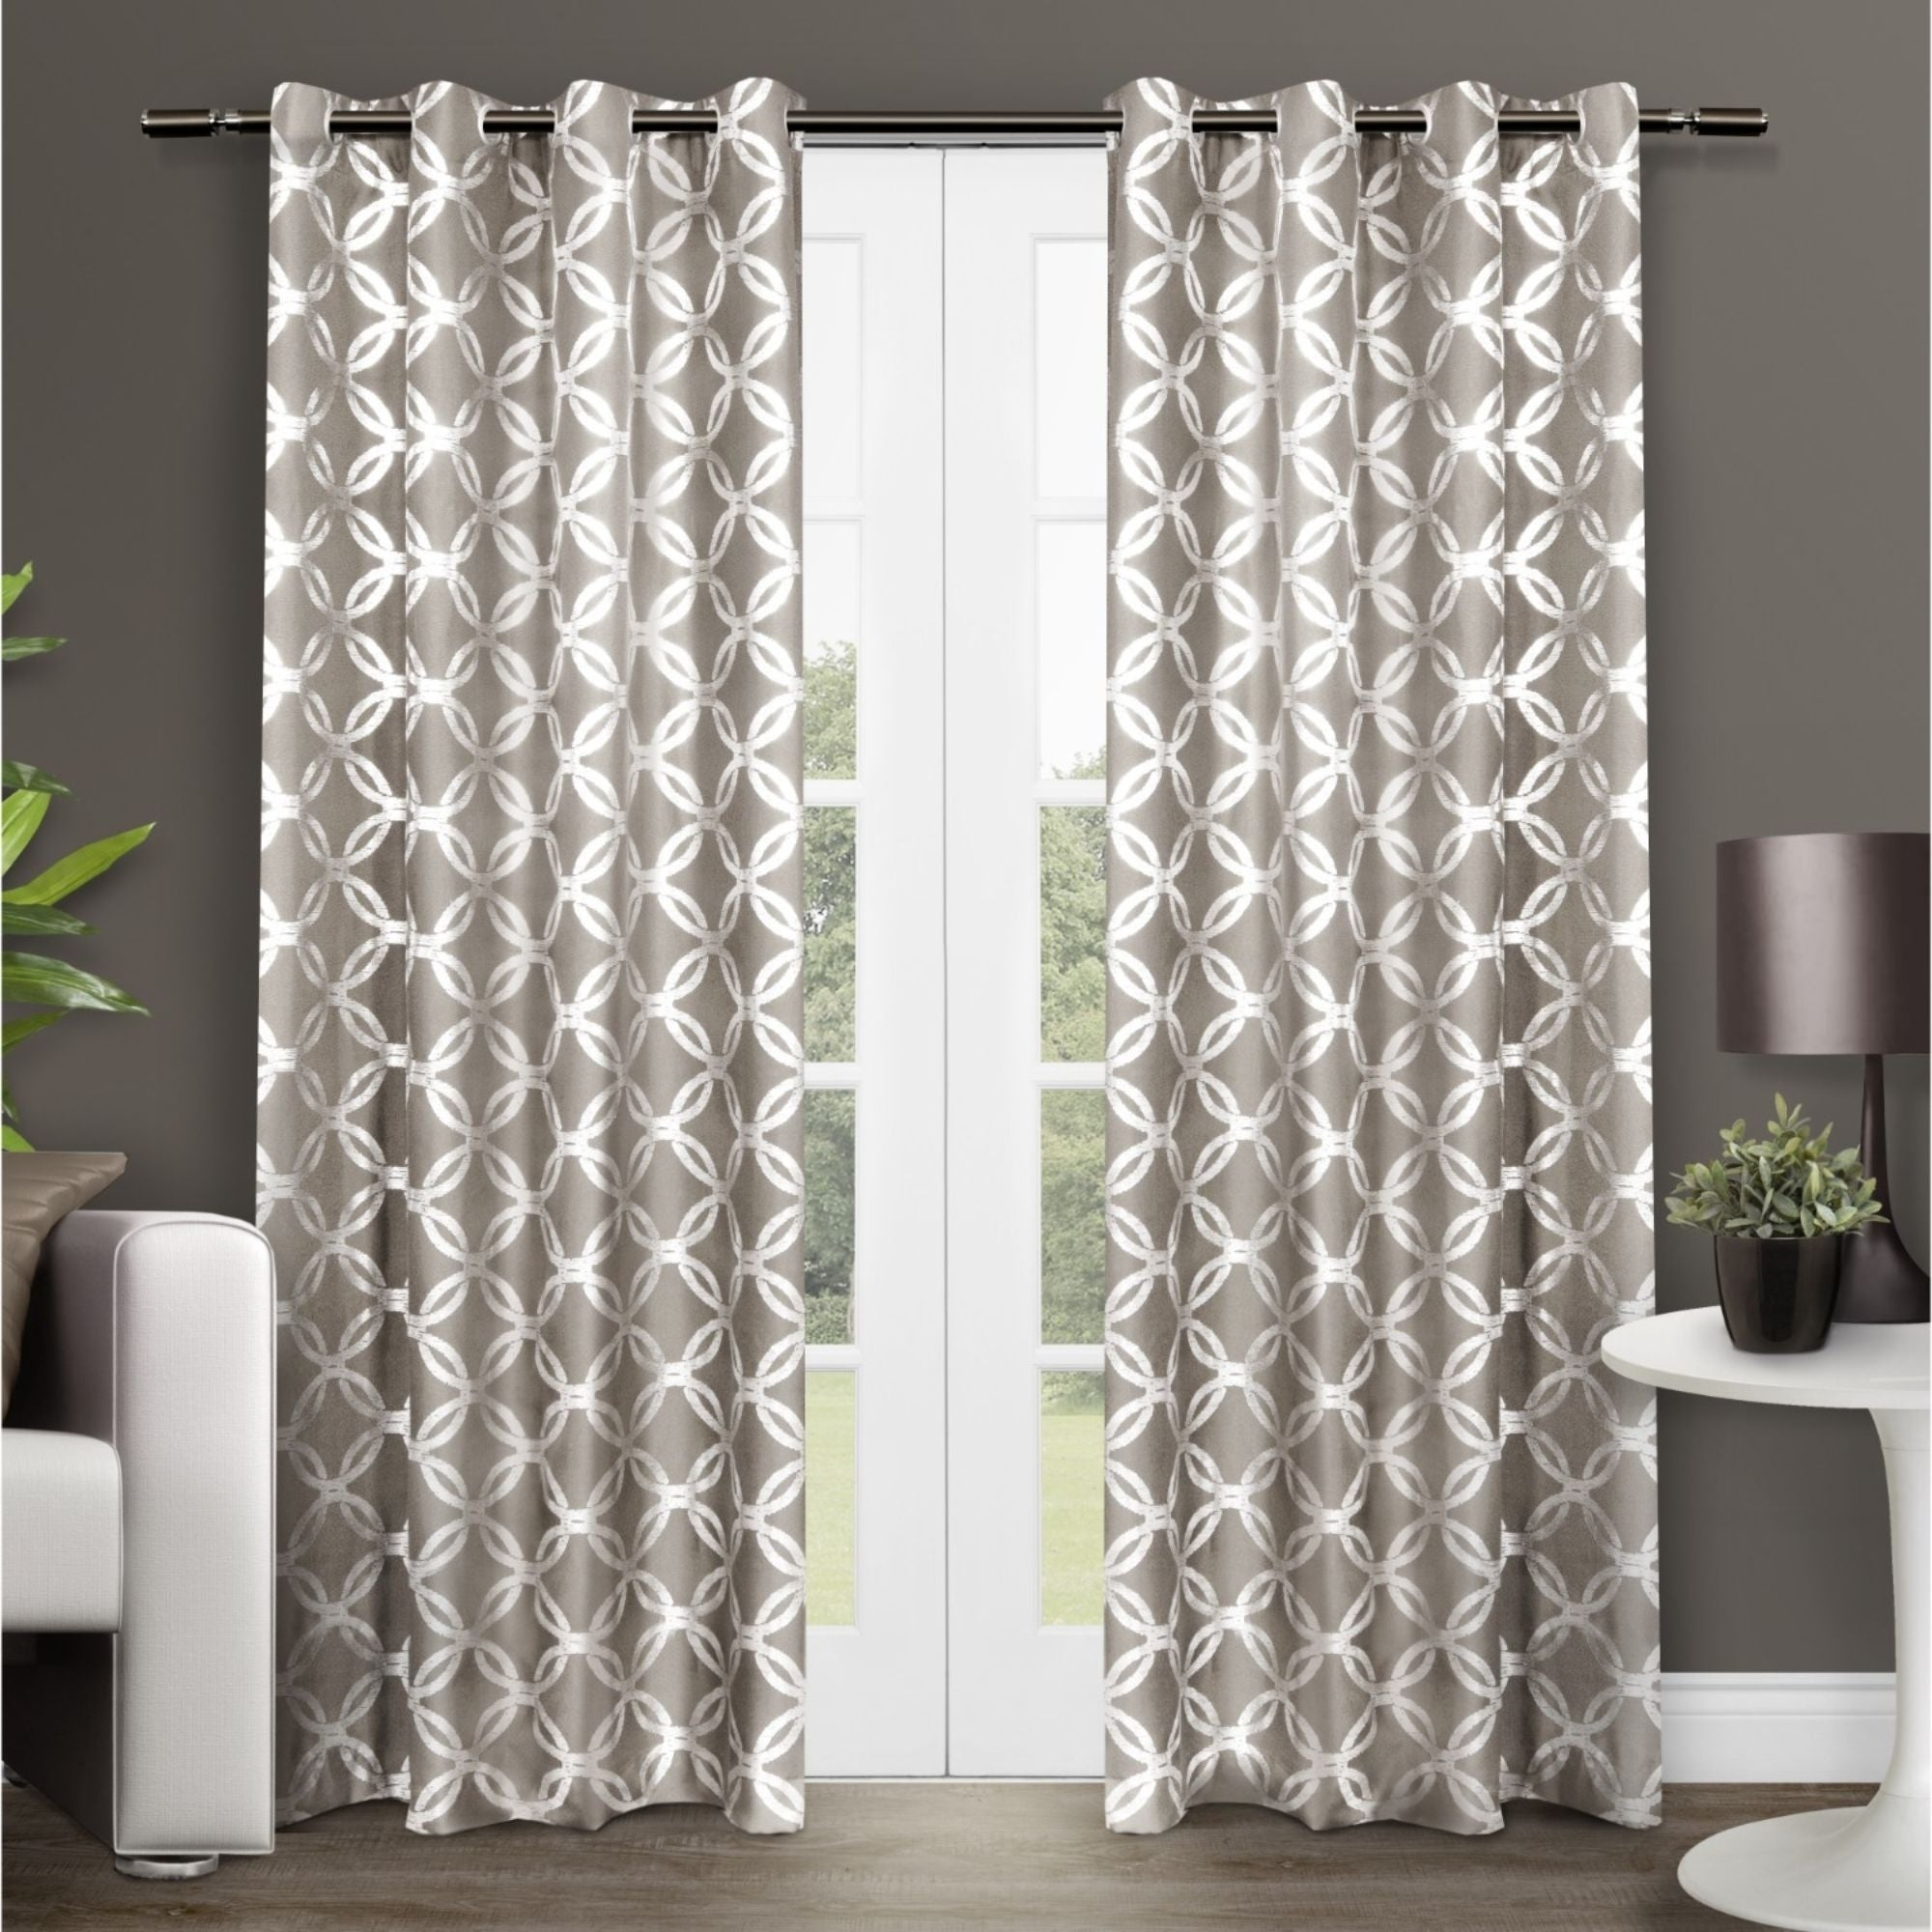 The Curated Nomad Sloat Metallic Geometric Grommet Top Curtain Panel Pair With Regard To The Curated Nomad Duane Blackout Curtain Panel Pairs (View 18 of 30)